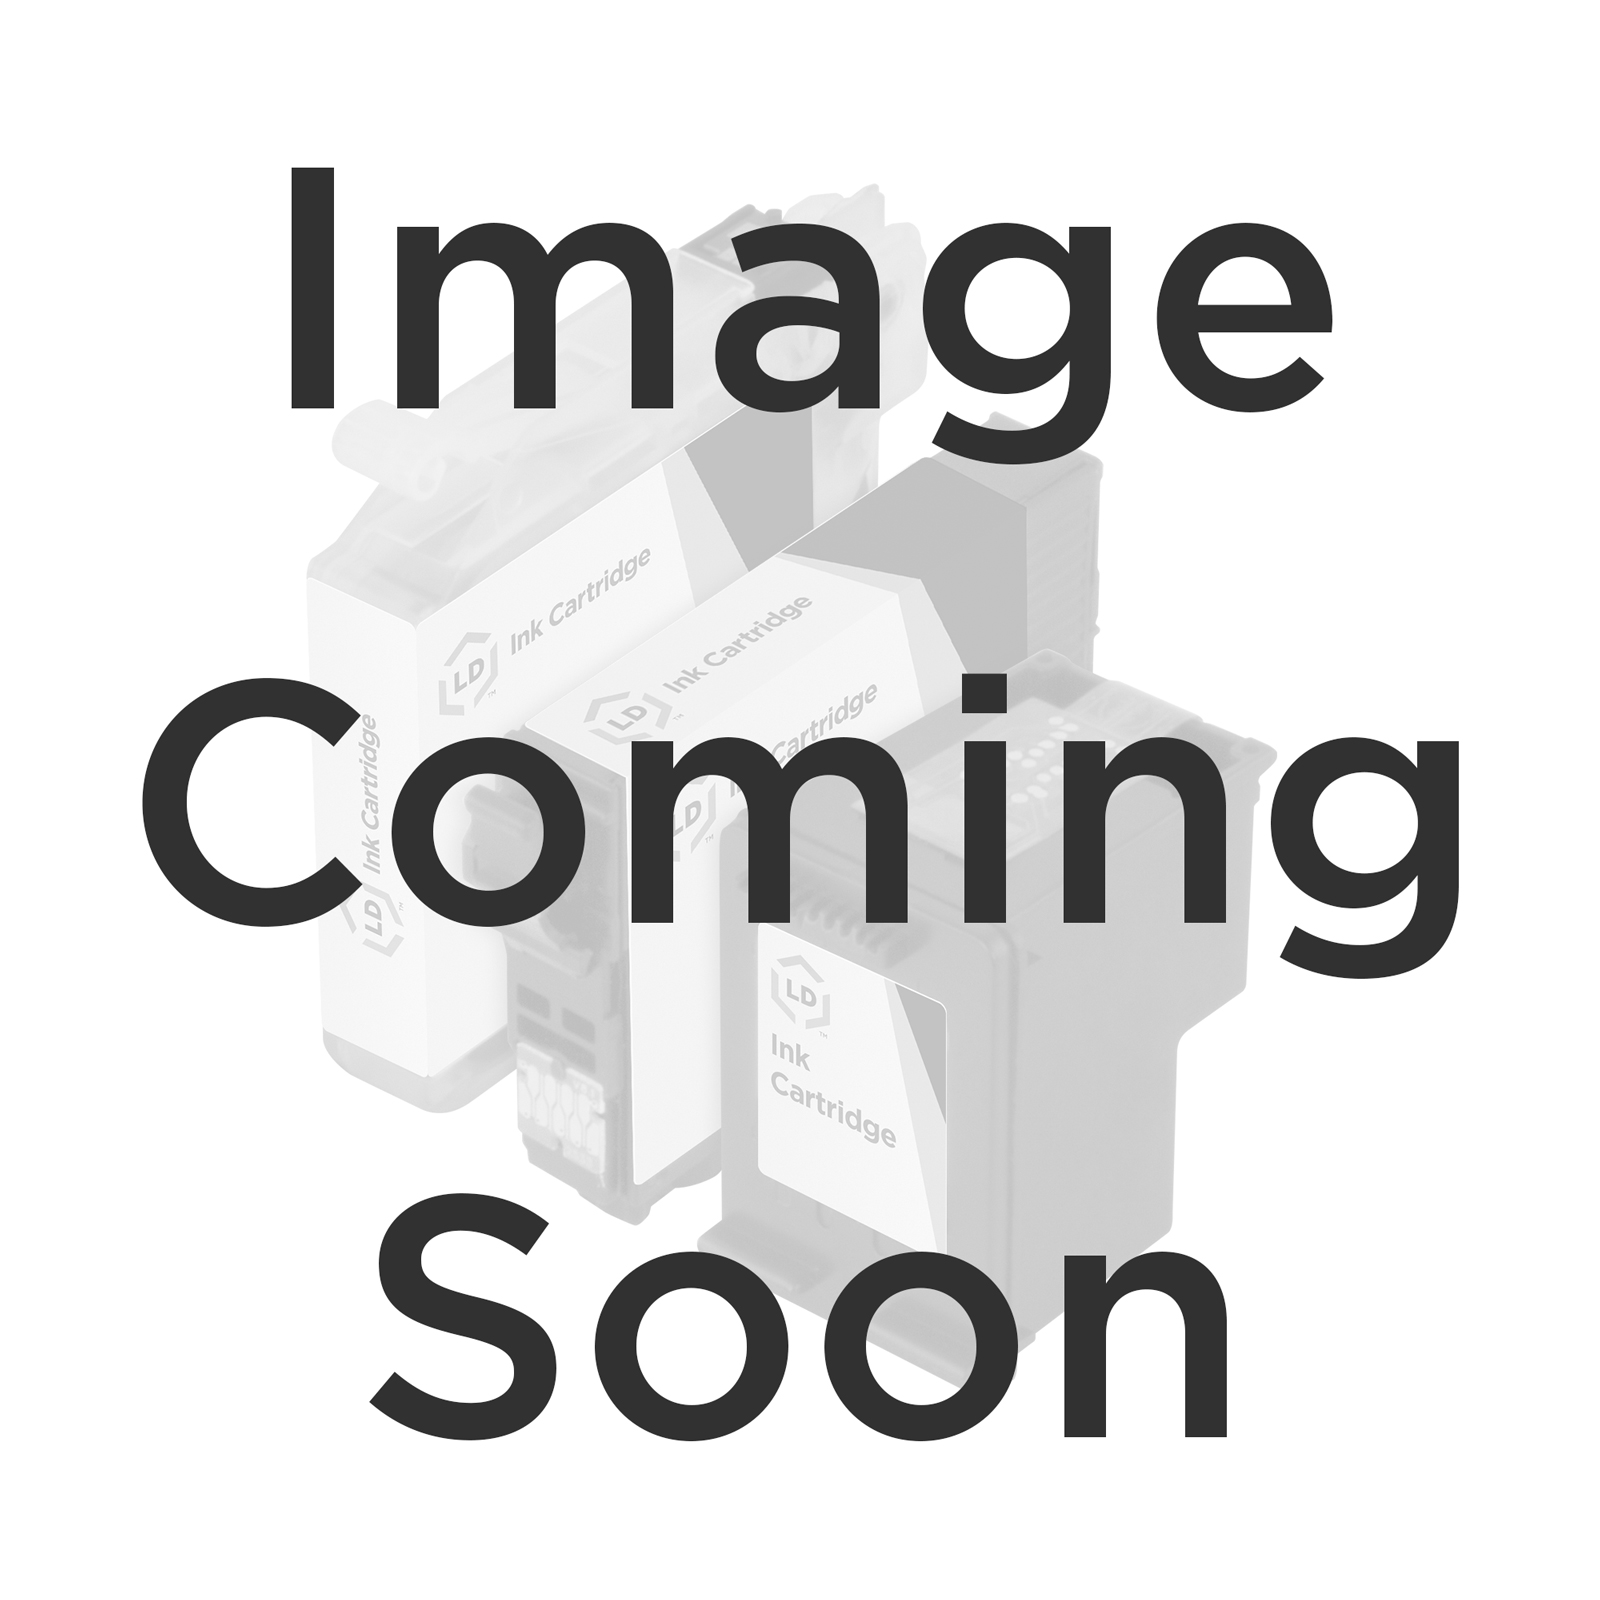 "Post-it Notes Value Pack in Canary Yellow with 4 Free Pads in Bright Colors - 18 per pack - 3"" x 3"" - Assorted"